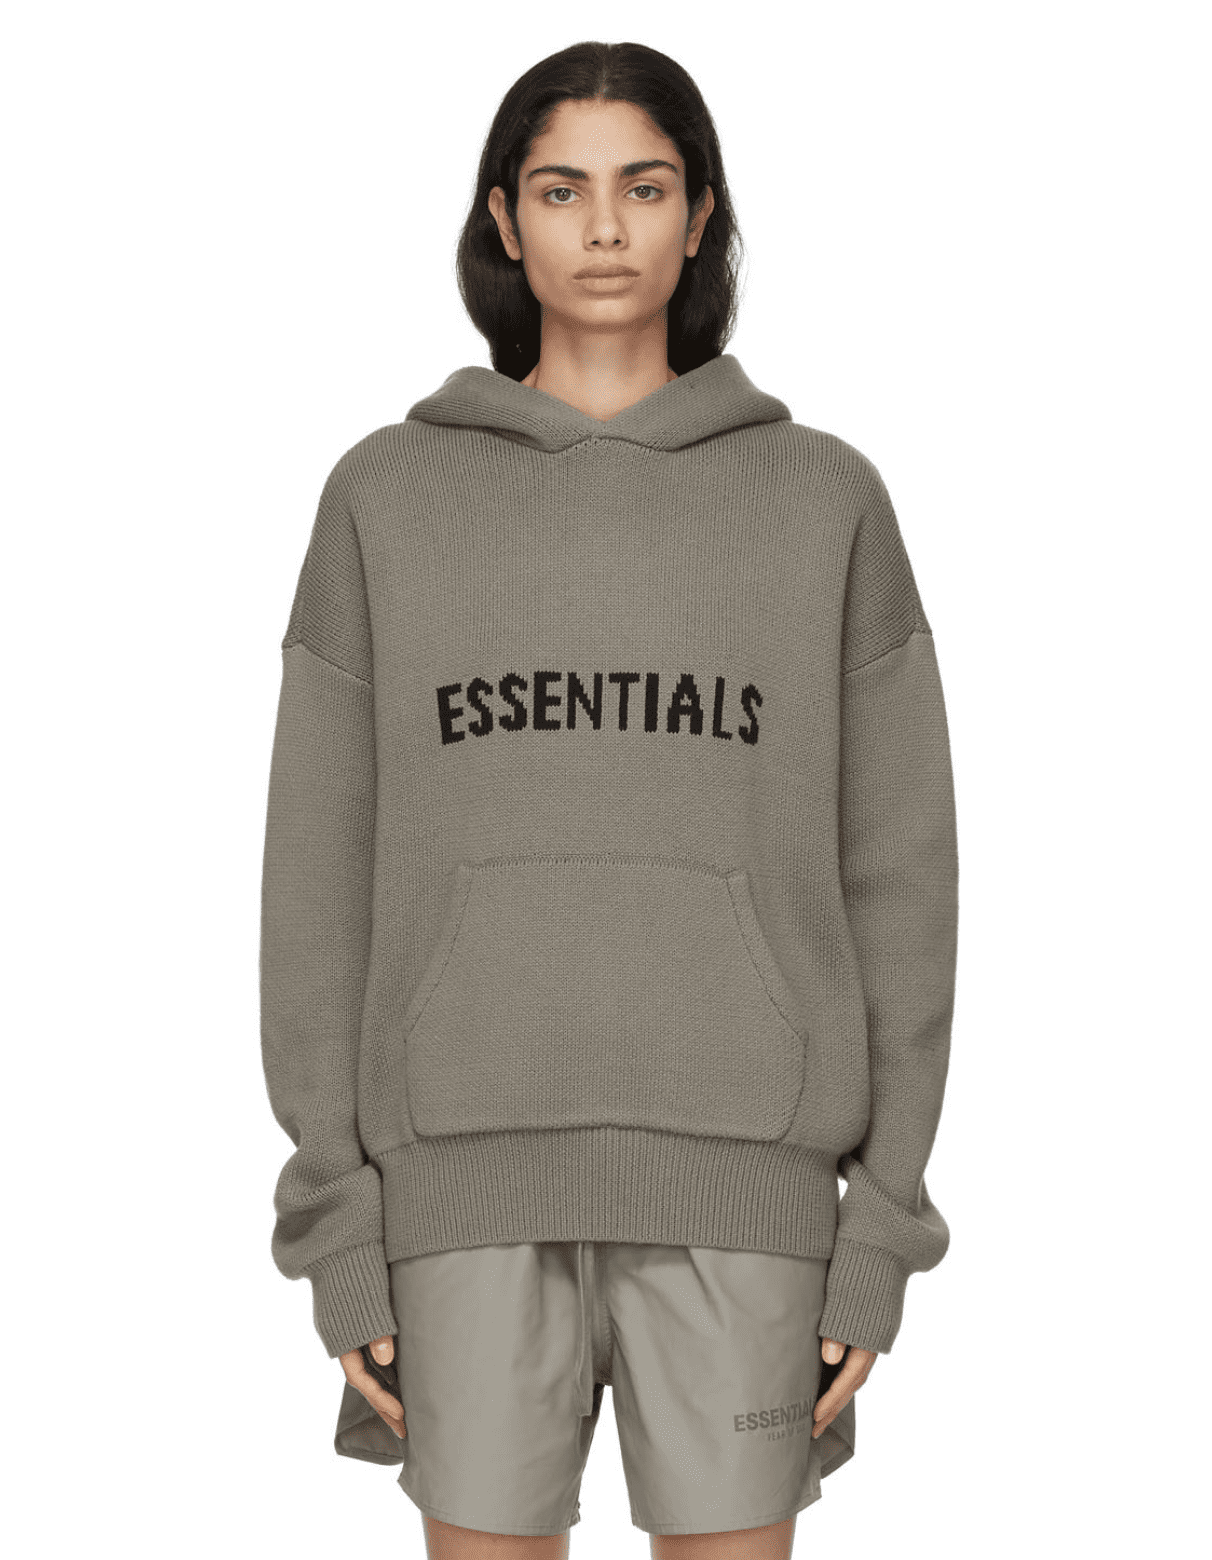 Ssense / PacSun: Essentials new release!